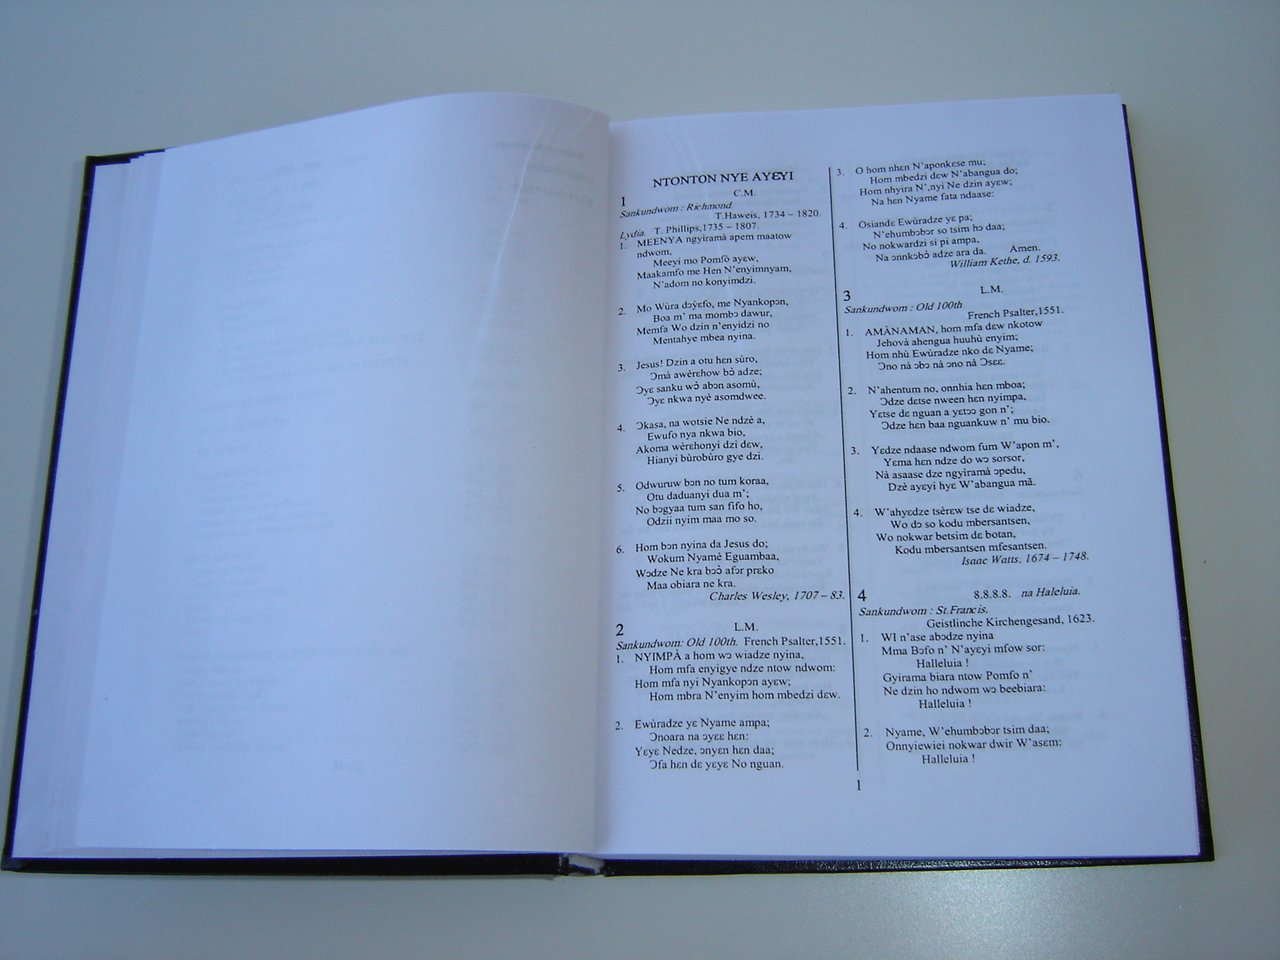 CHRISTIAN ASOR NDWOM FOFOR / Christian Hymnal with more than